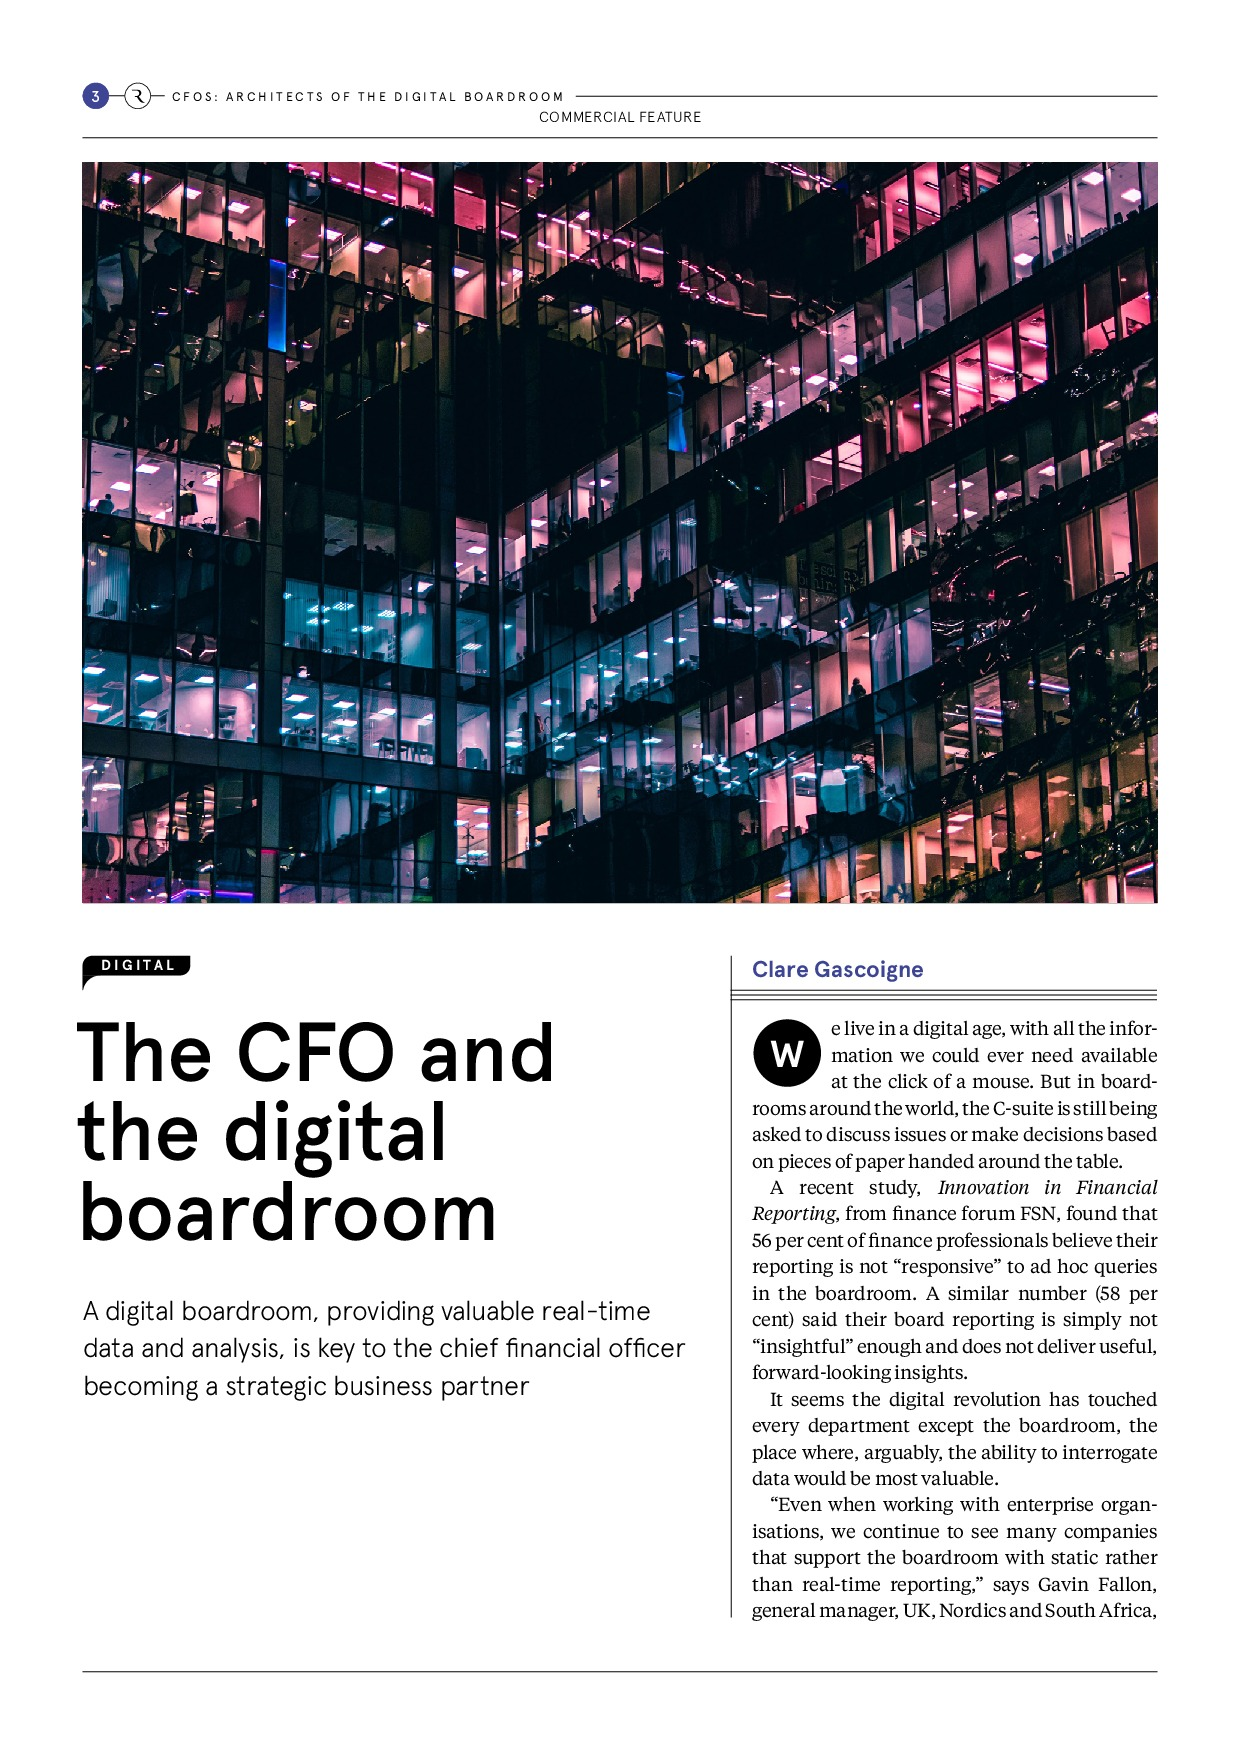 CFOs: Architects of the Digital Boardroom | Page 3